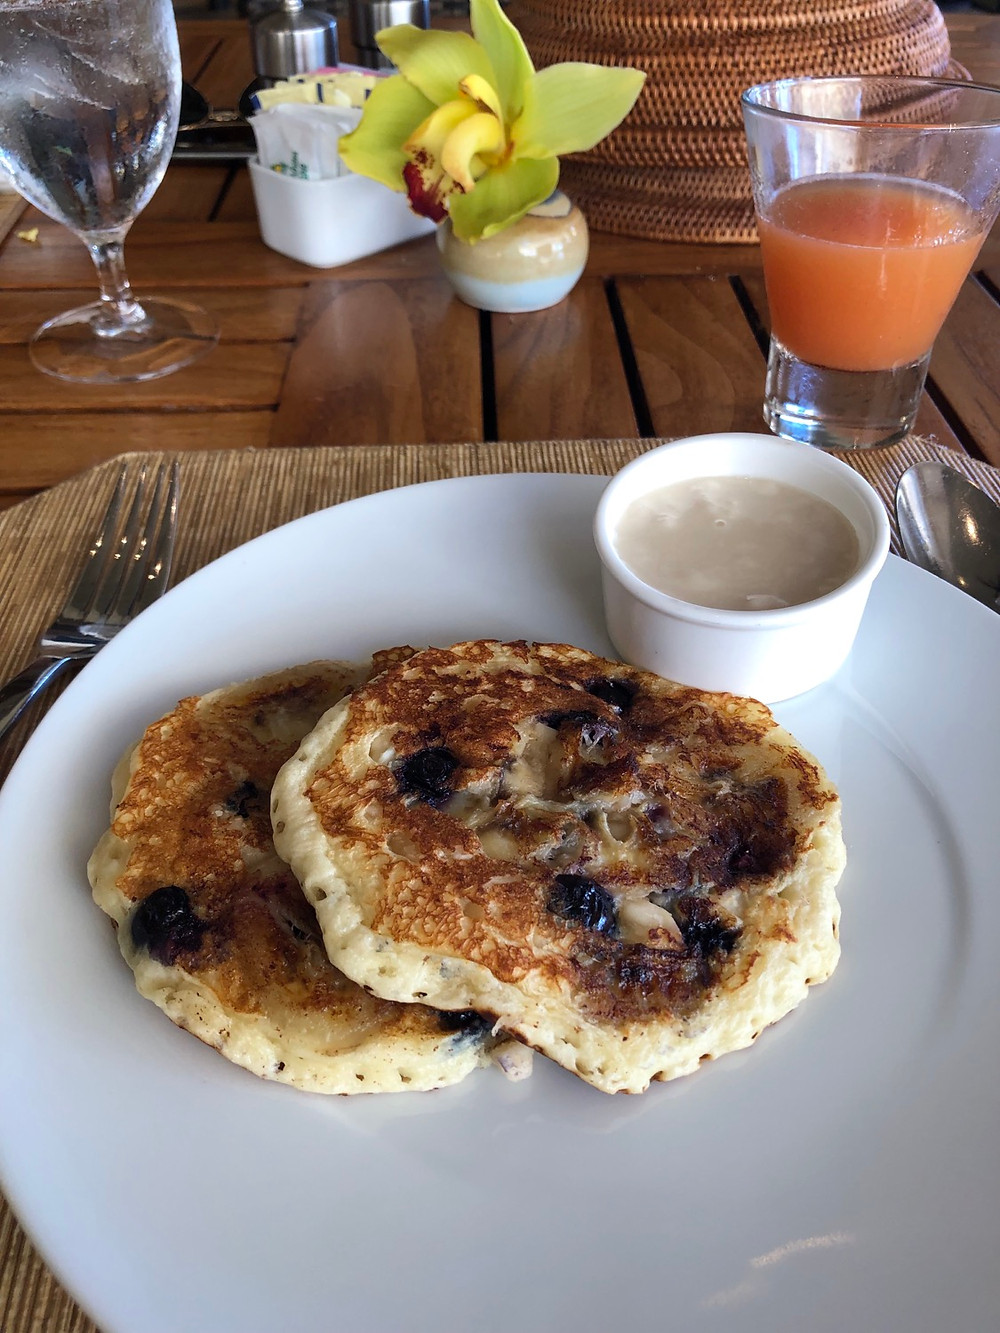 Made to order banana, blueberry and macadamia nut pancakes with coconut syrup